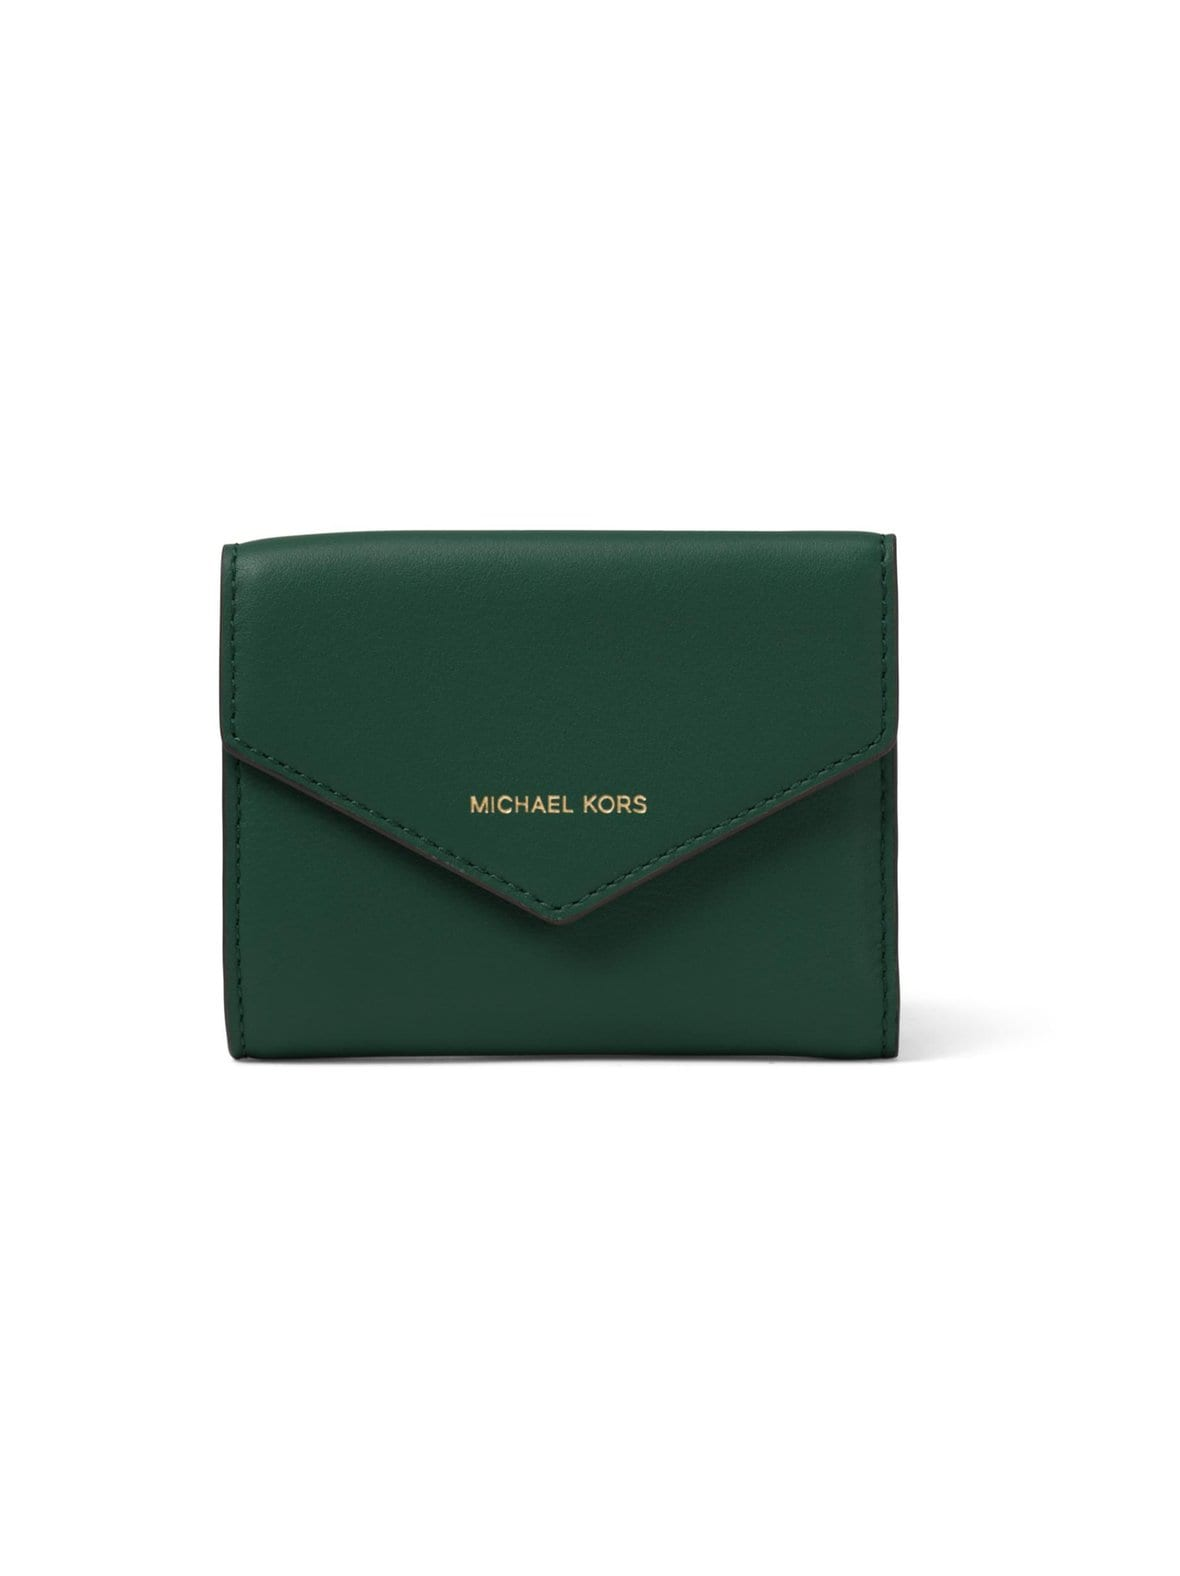 816dee3b16e7 Racing Green Michael Michael Kors Jet Set Small Envelope Wallet ...